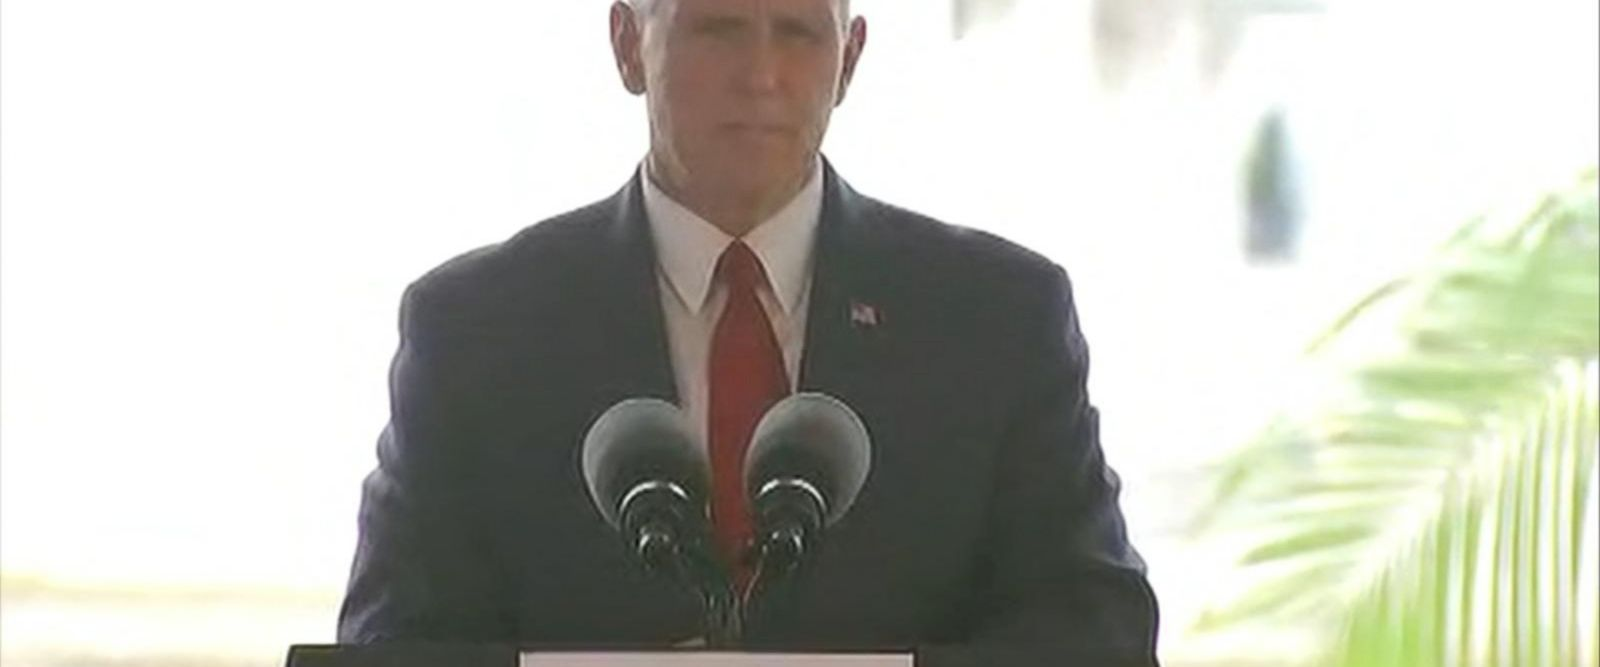 In Panama, the vice president spoke about the deadly attack in Spain.